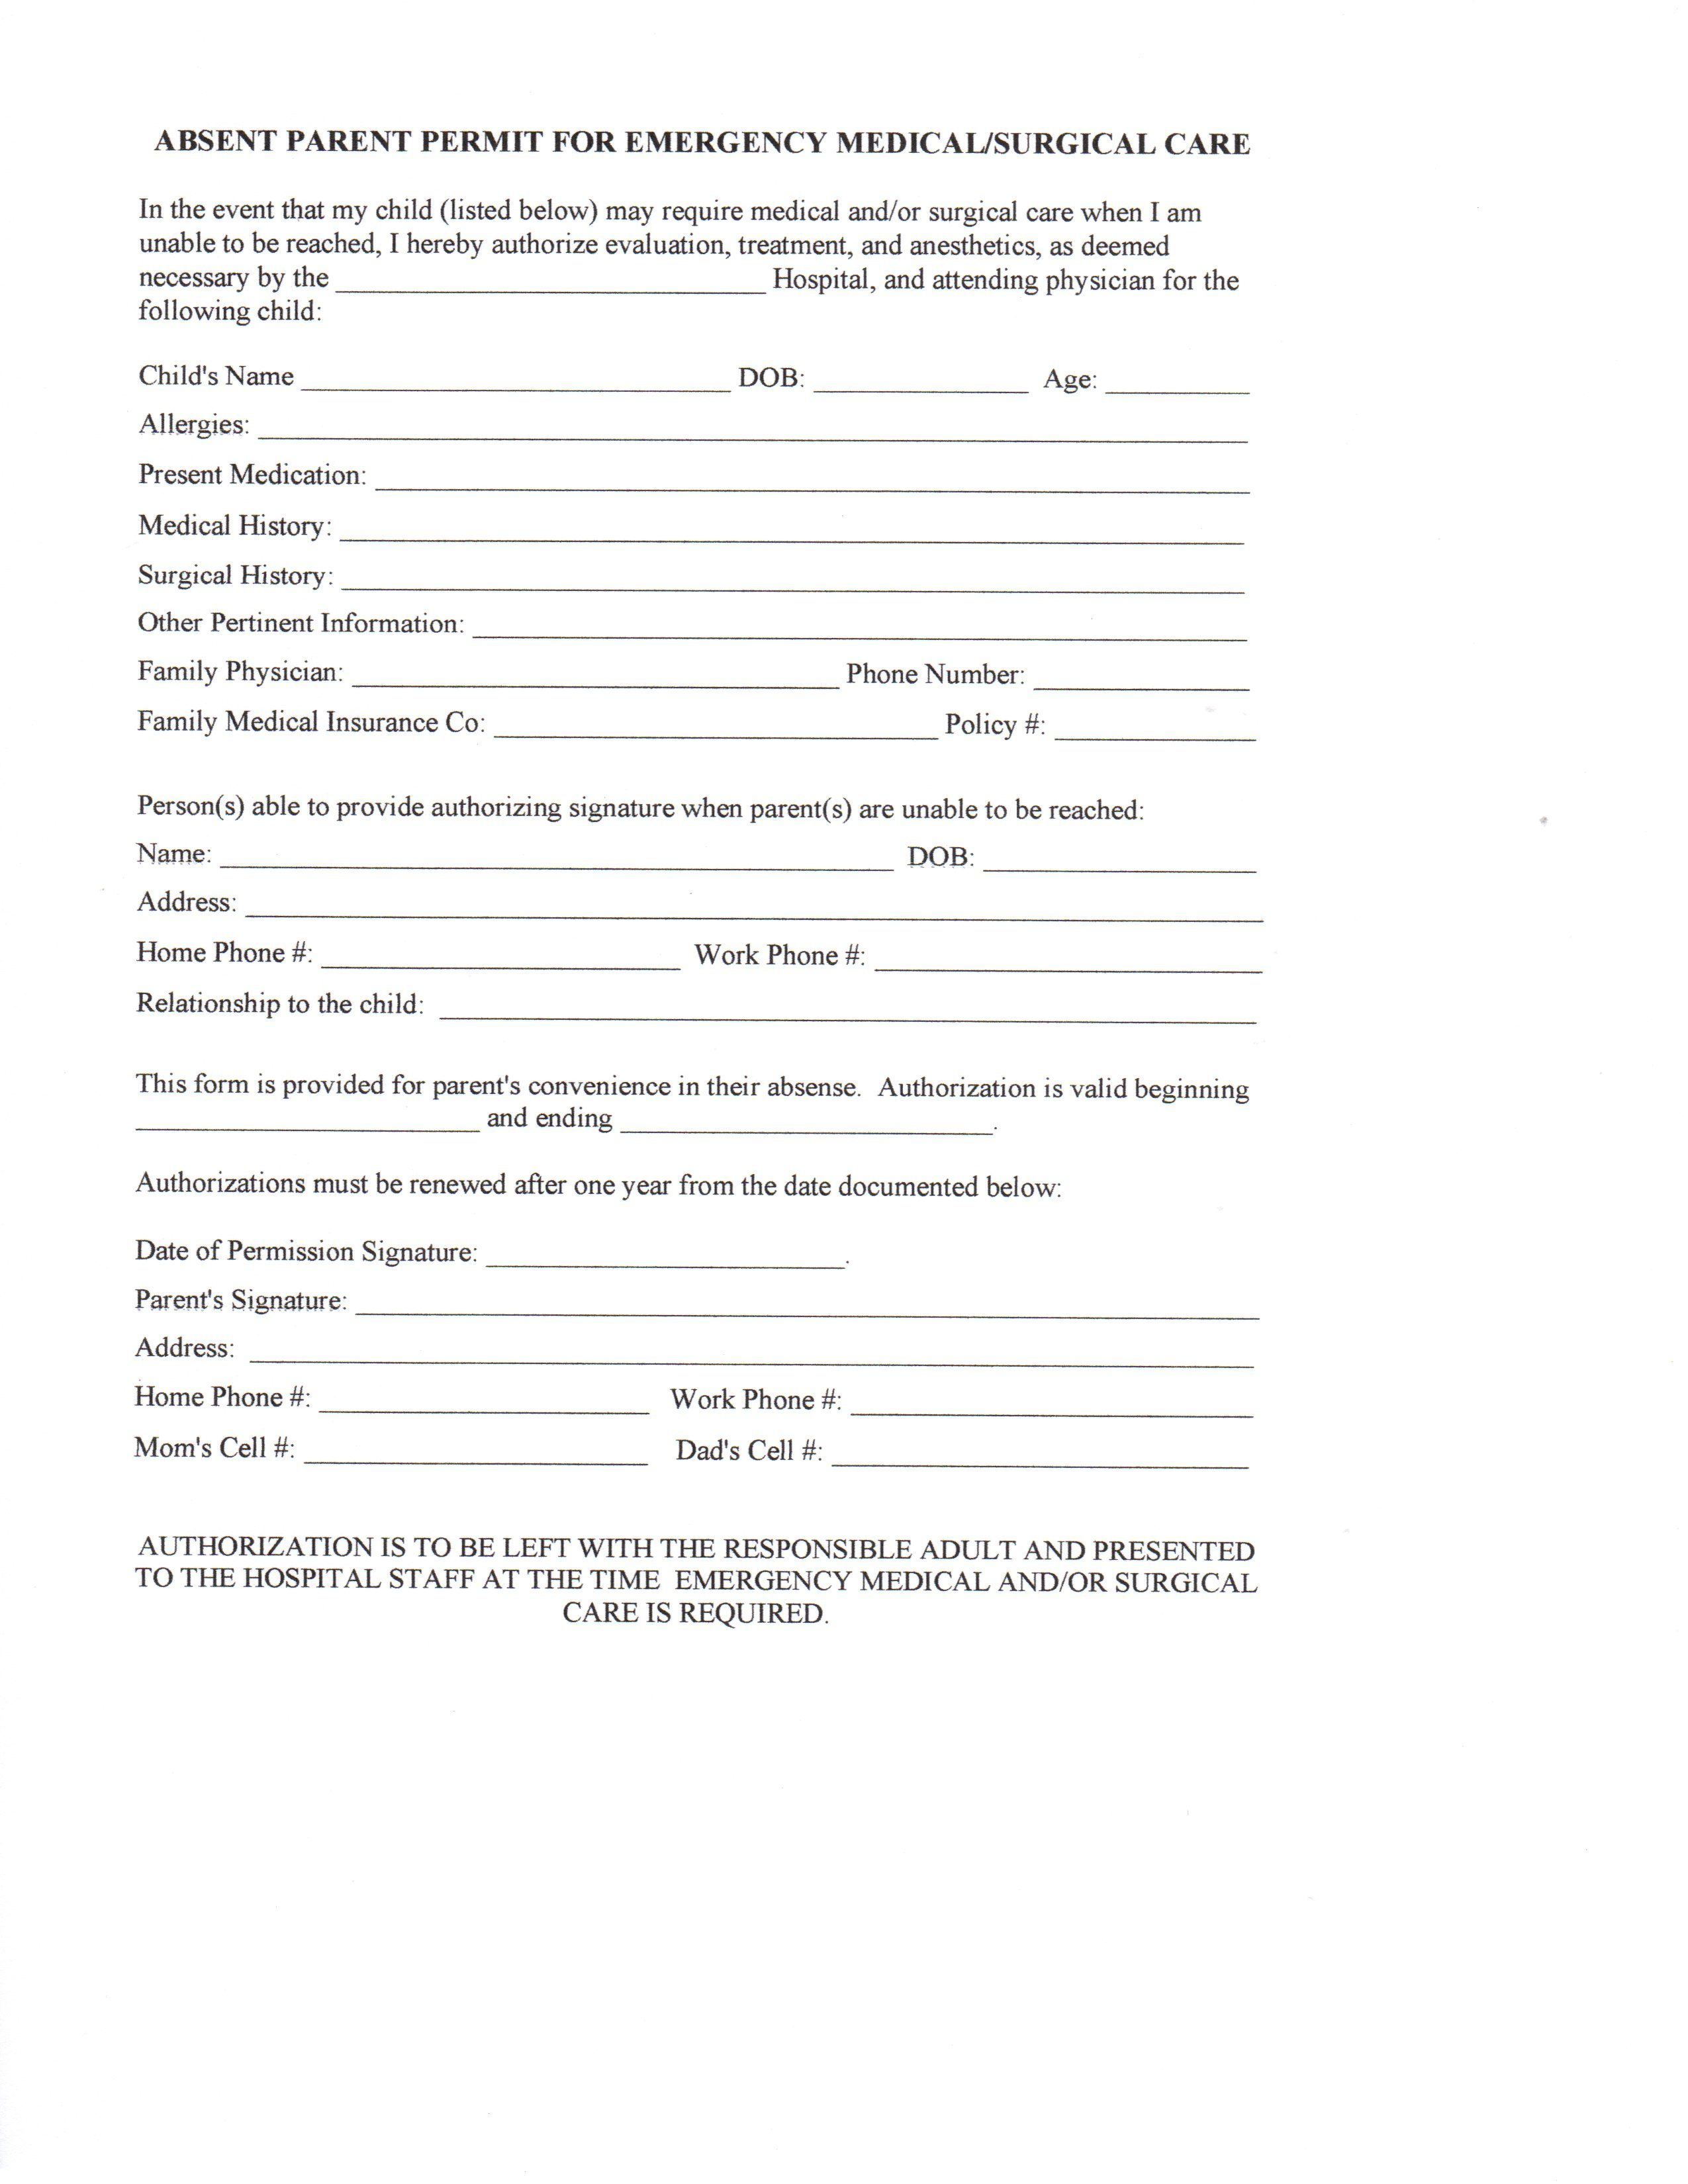 Child Care Provider Tax Form For Parents – 24 Daycare Receipt - Free Printable Daycare Forms For Parents